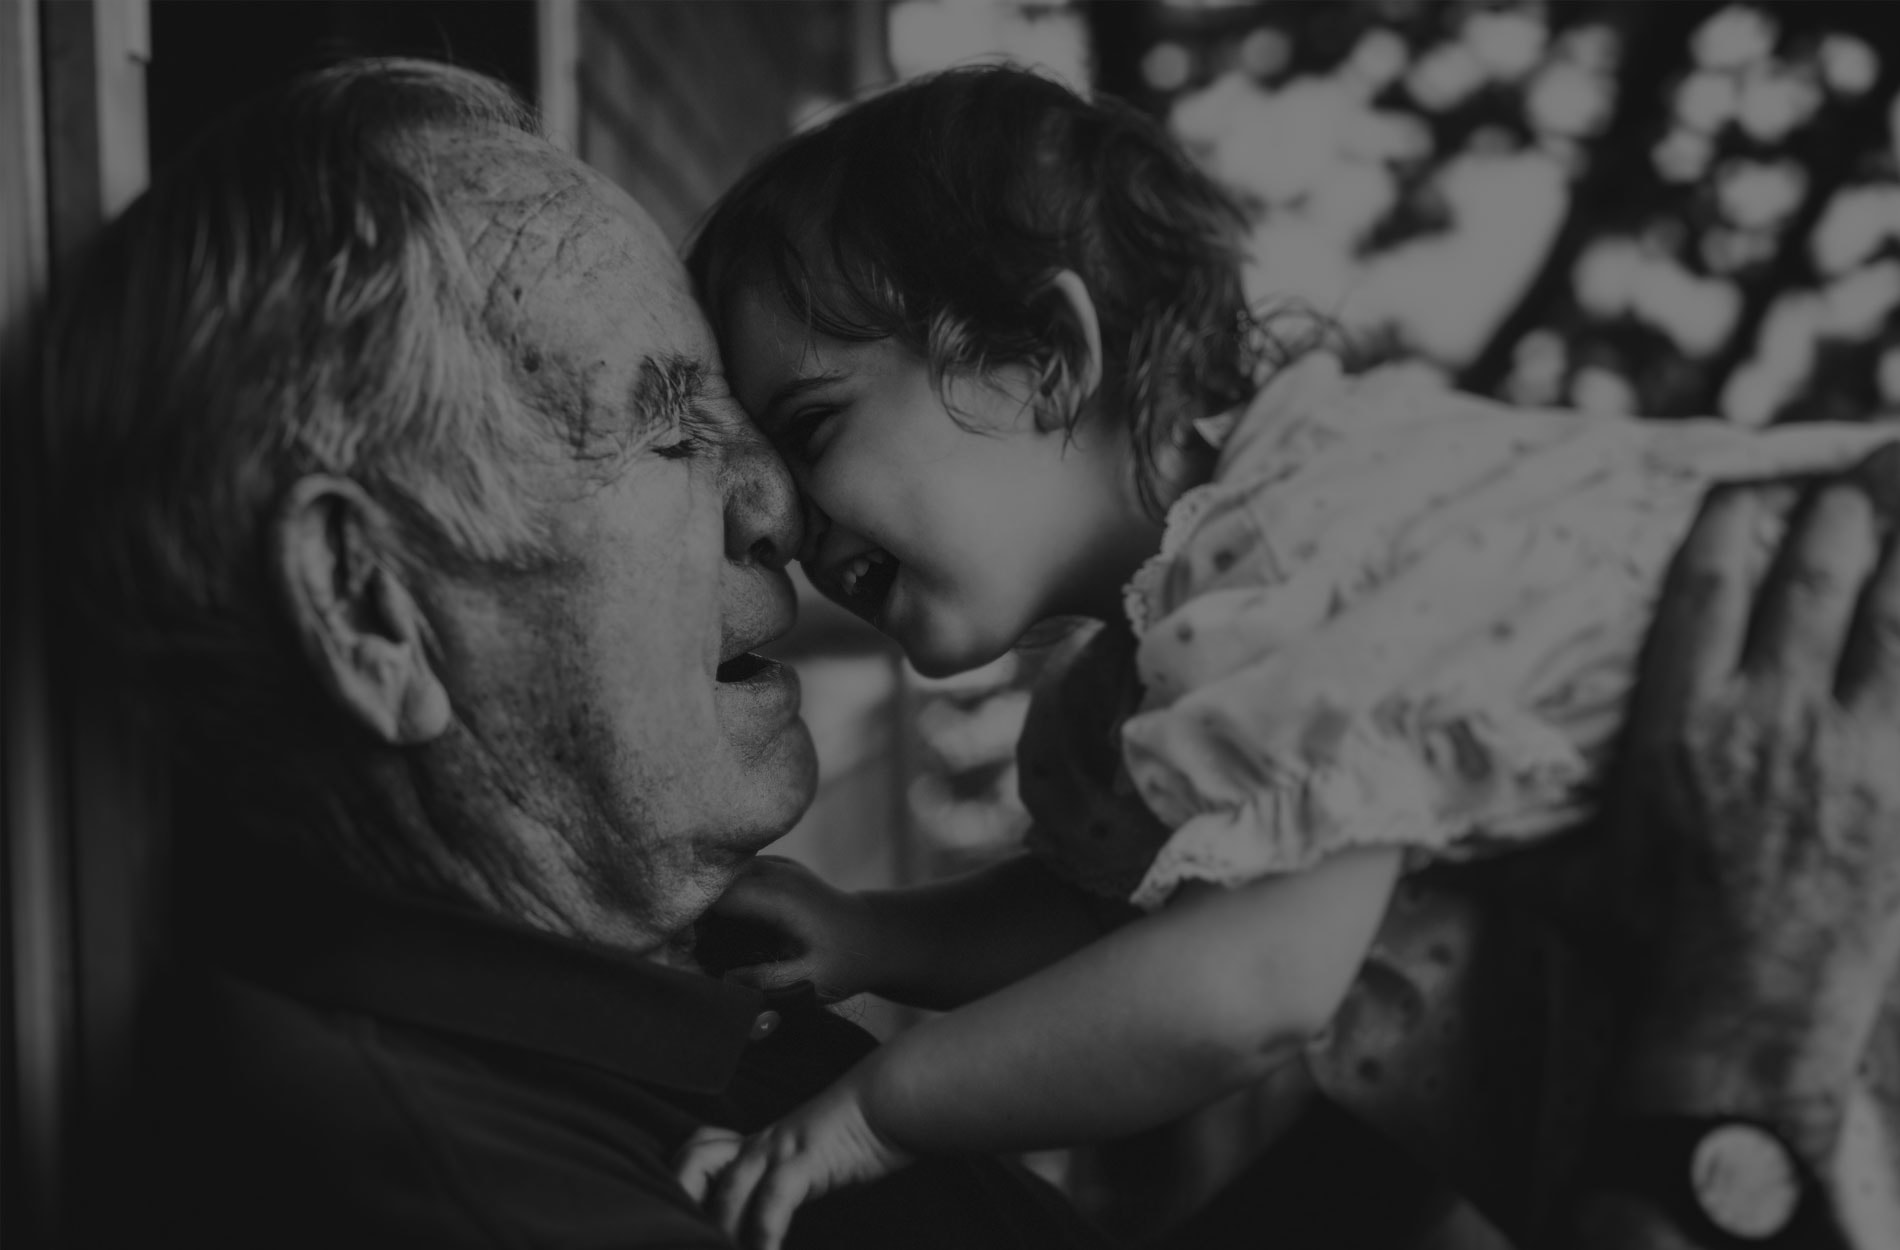 Family Photography, Grandpa holding up their grandchild to their face